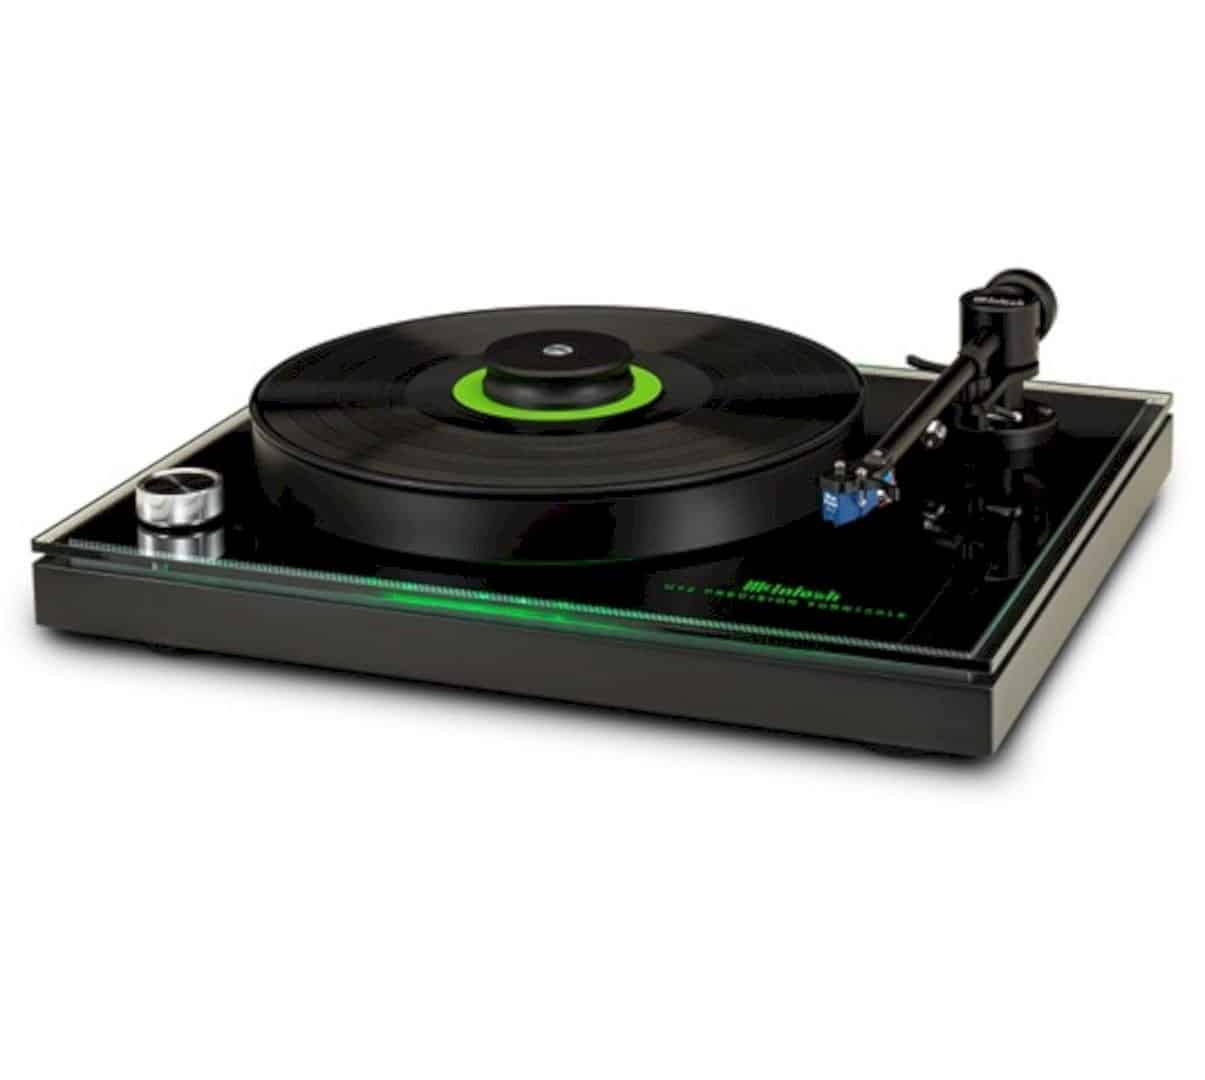 MT2 Precision Turntable 7